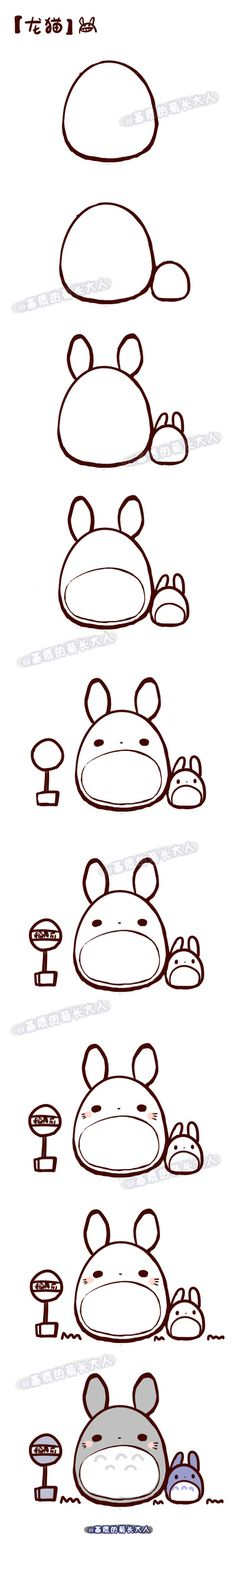 Totoro Doodle Cheat Sheet - Picture only, bad link. Kawaii Drawings, Doodle Drawings, Easy Drawings, Animal Drawings, Doodle Art, Doodle Illustrations, Kawaii Doodles, Cute Doodles, Step By Step Drawing